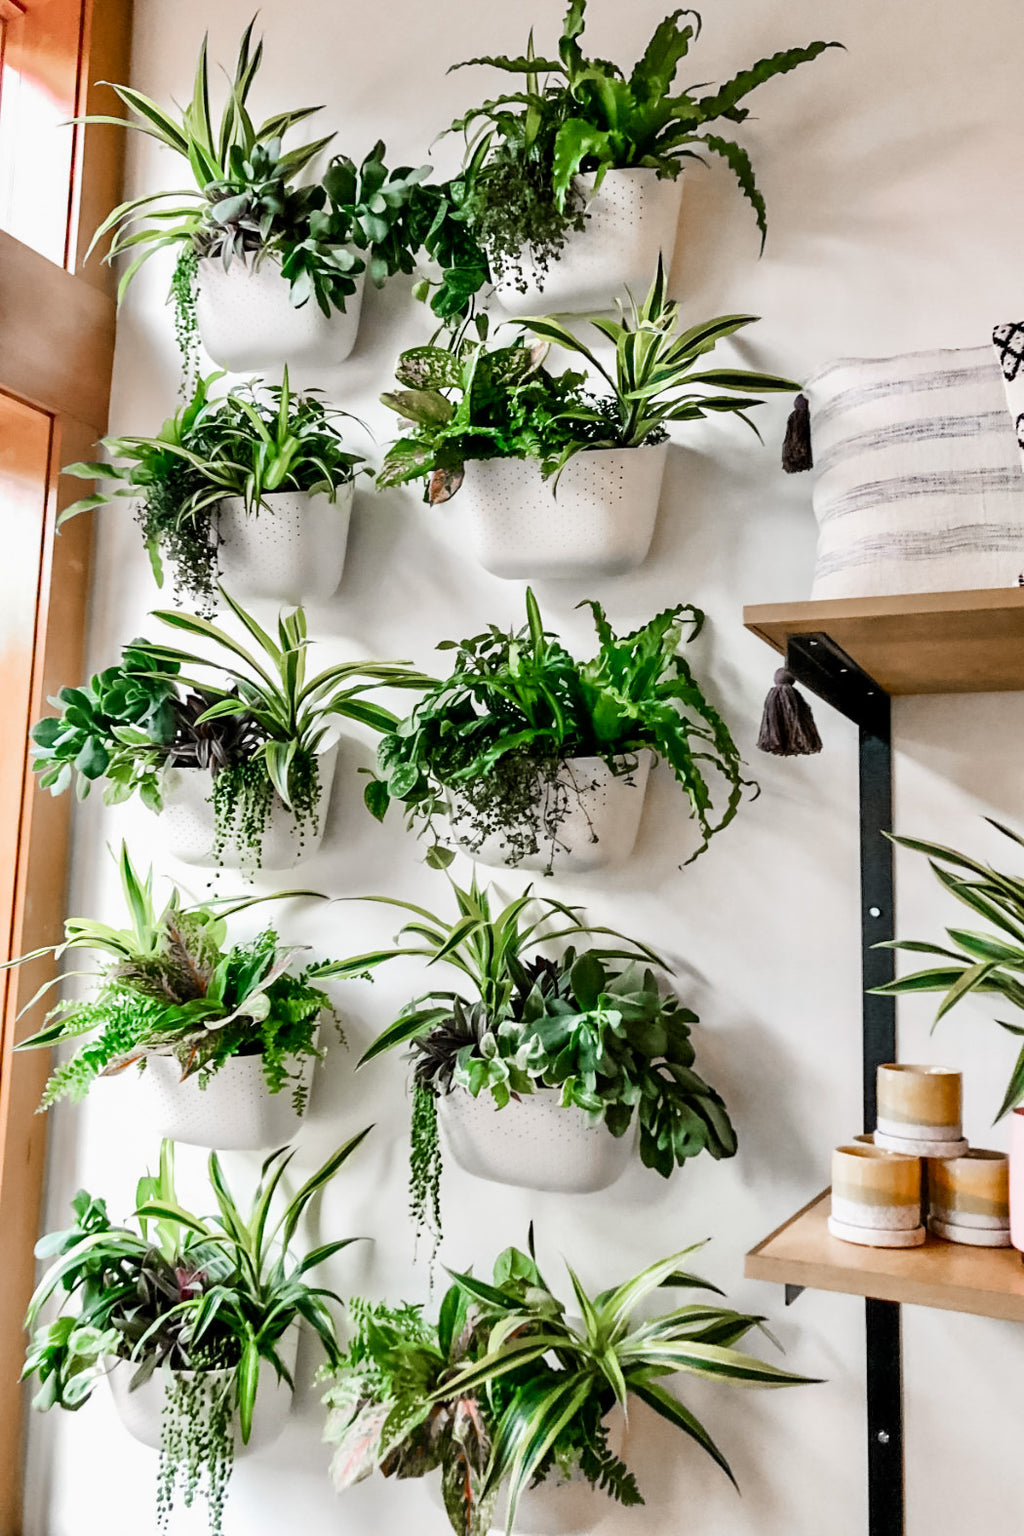 WallyGro Wally Eco Wall Planter